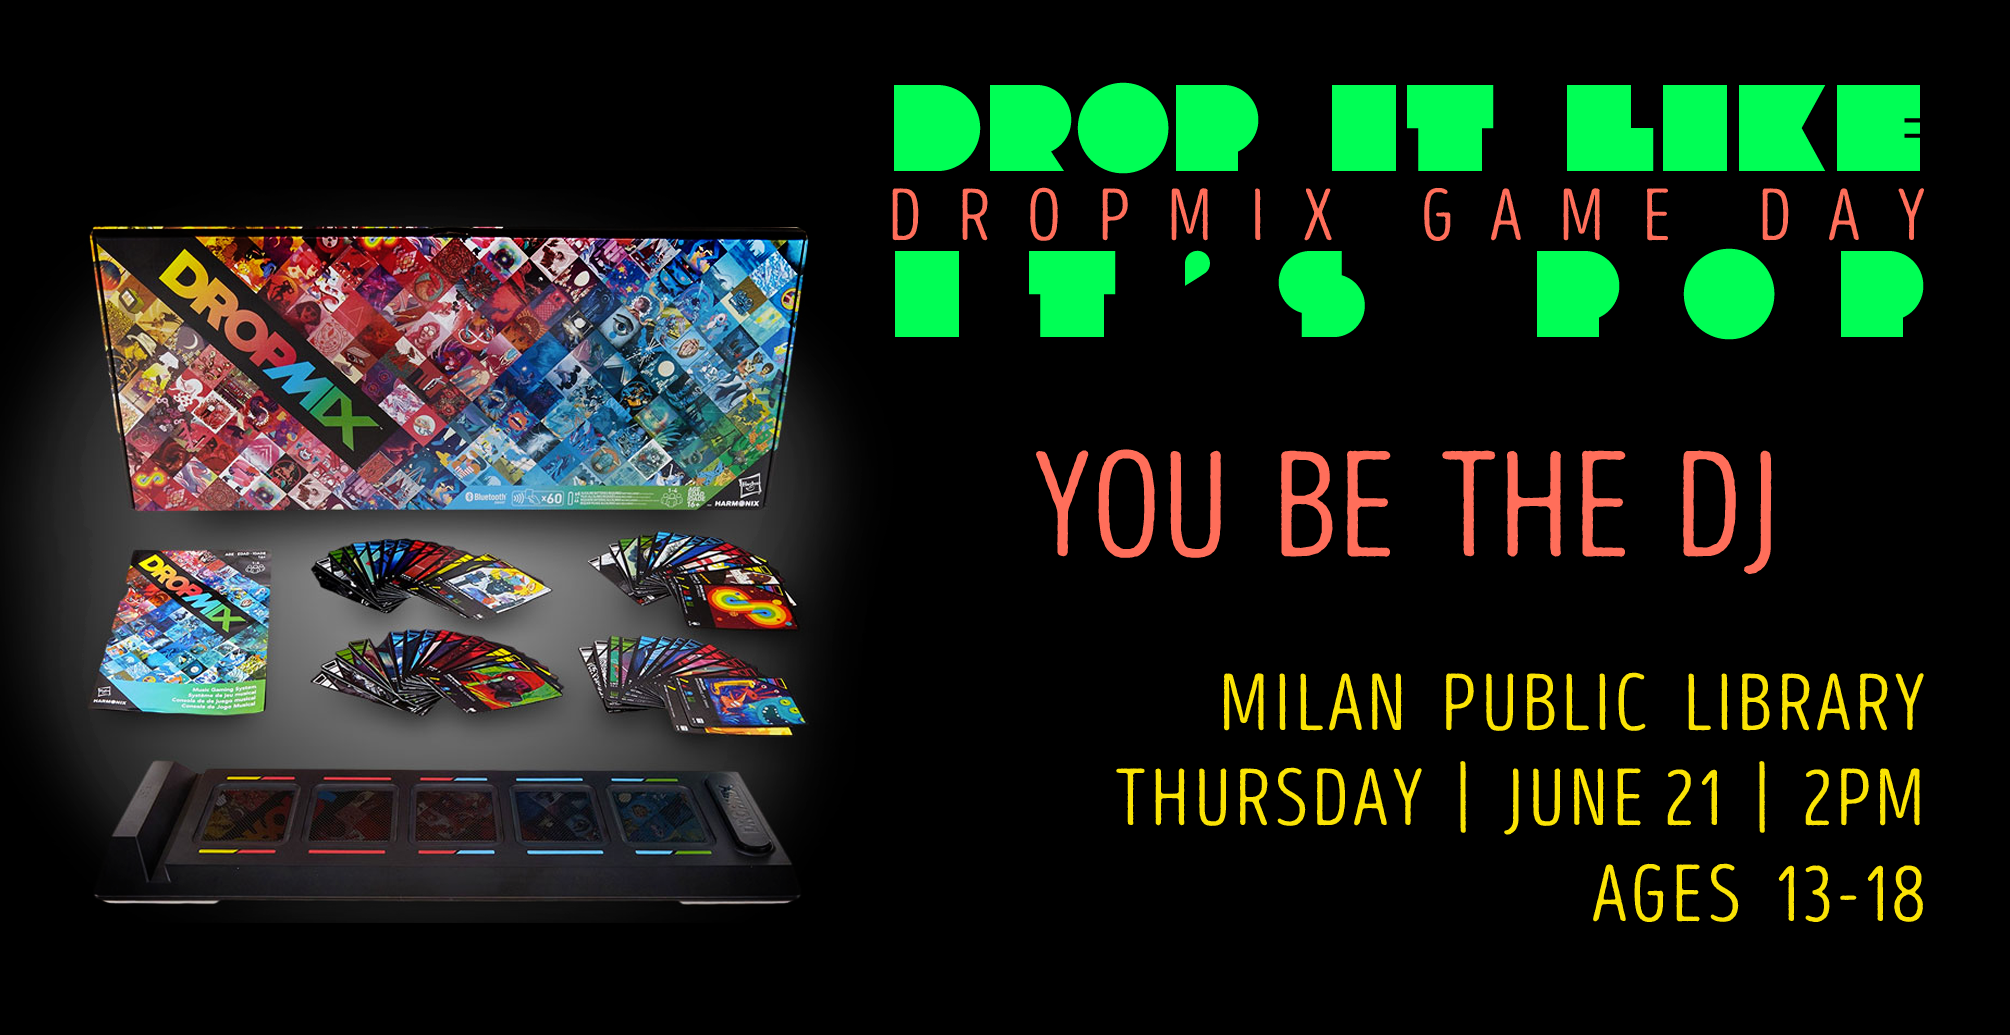 2018-06-TEEN-Milan-DropMix-Game-Day-Slide